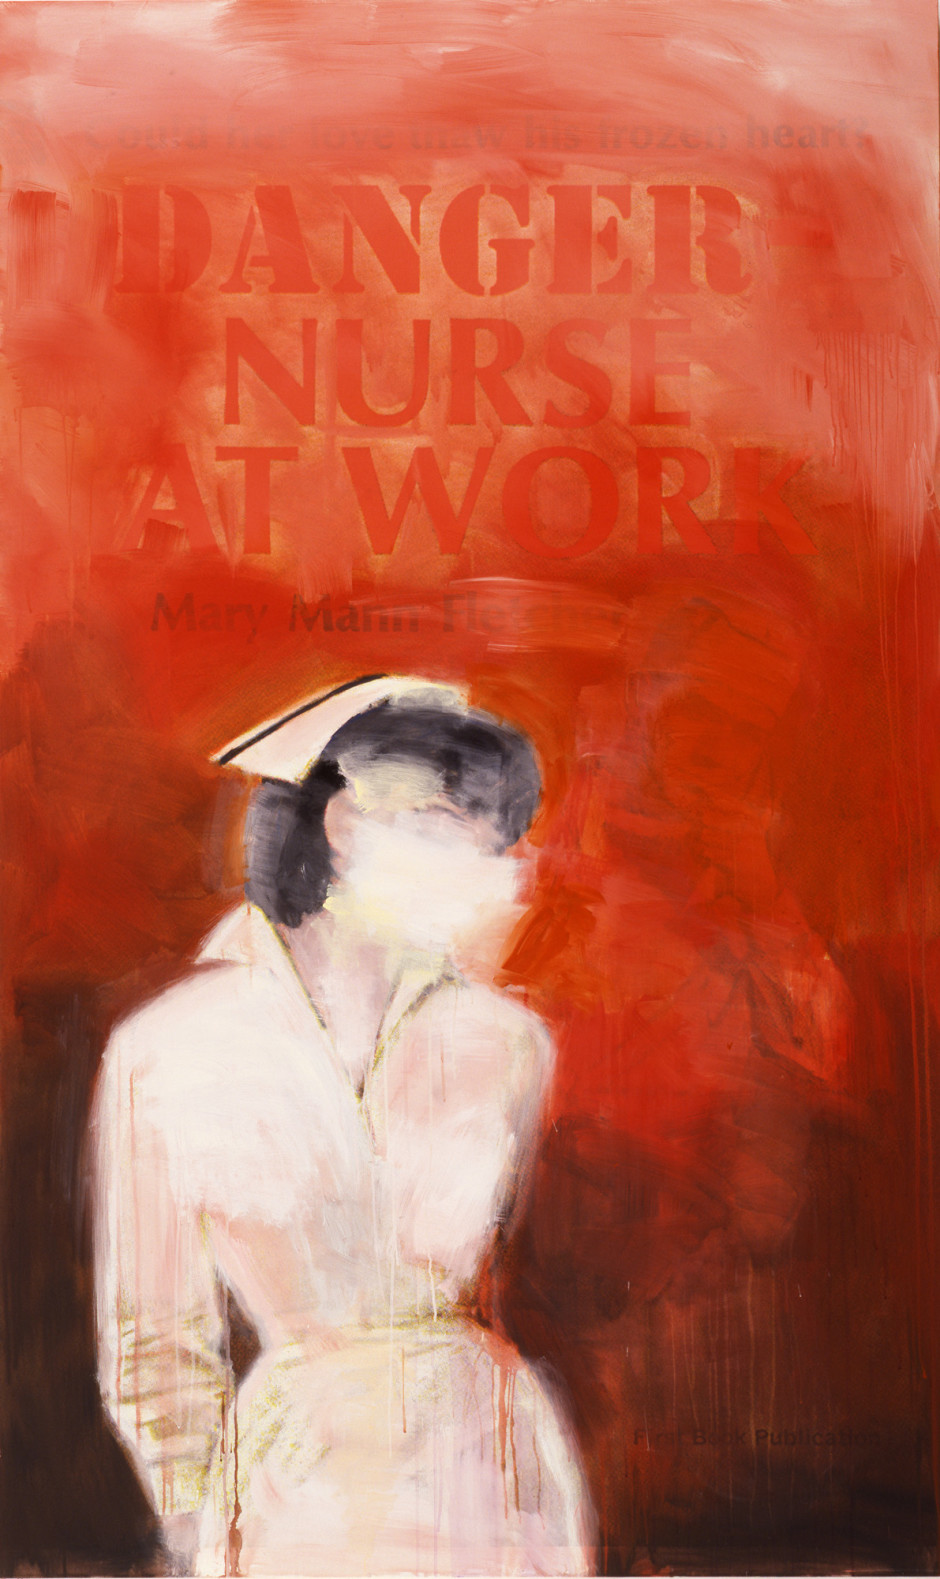 Danger Nurse at Work, 2002  signed on verso with date and title  ink jet print and acrylic on canvas  236.22 x 142.24 cm 93 x 56 in.